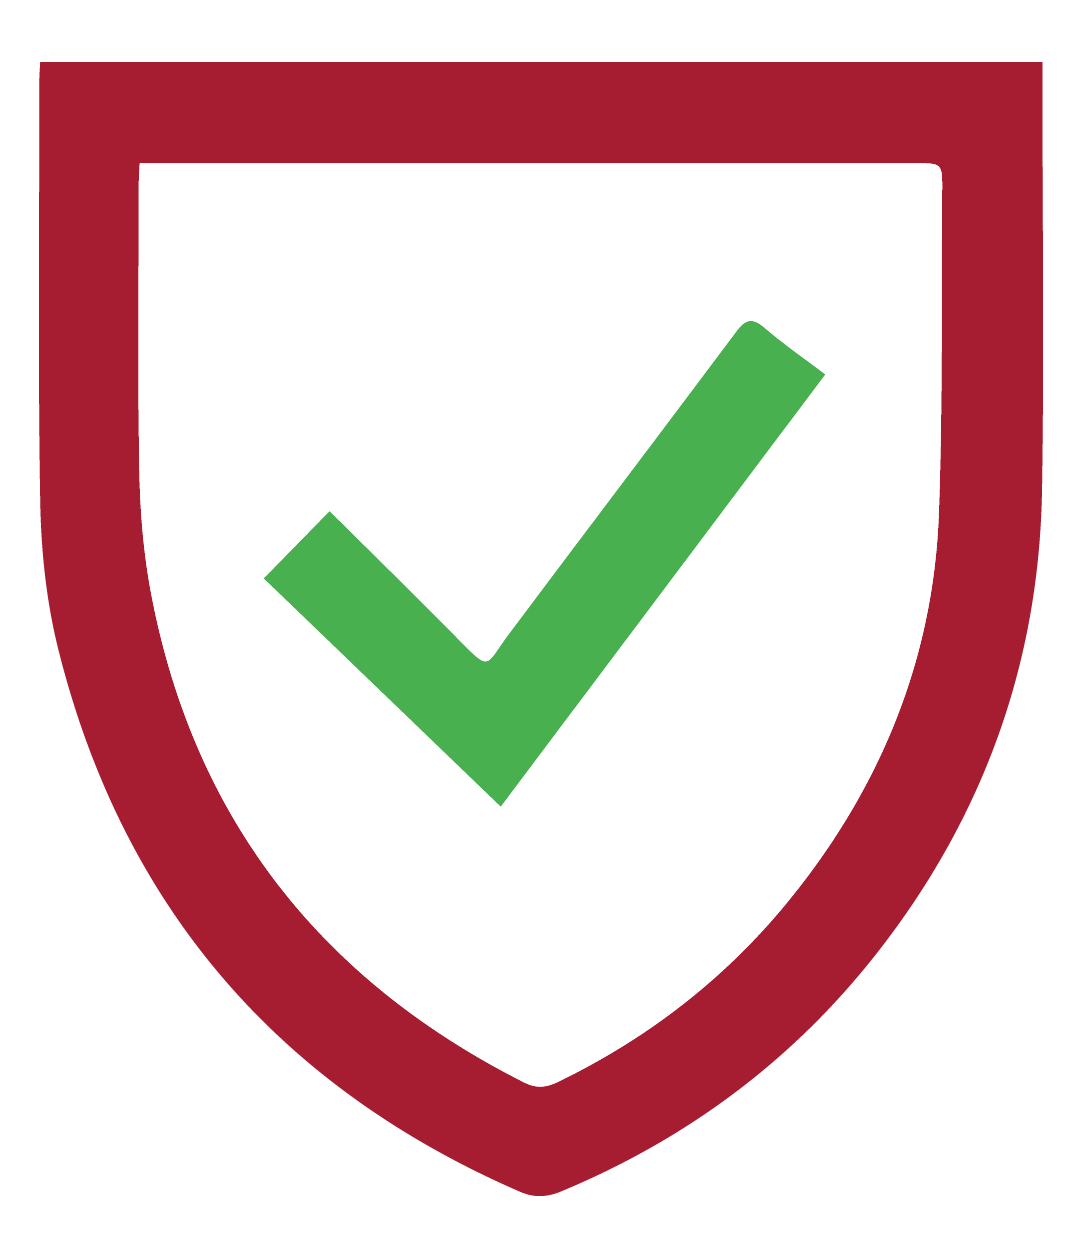 Harvard Crimson Clear logo